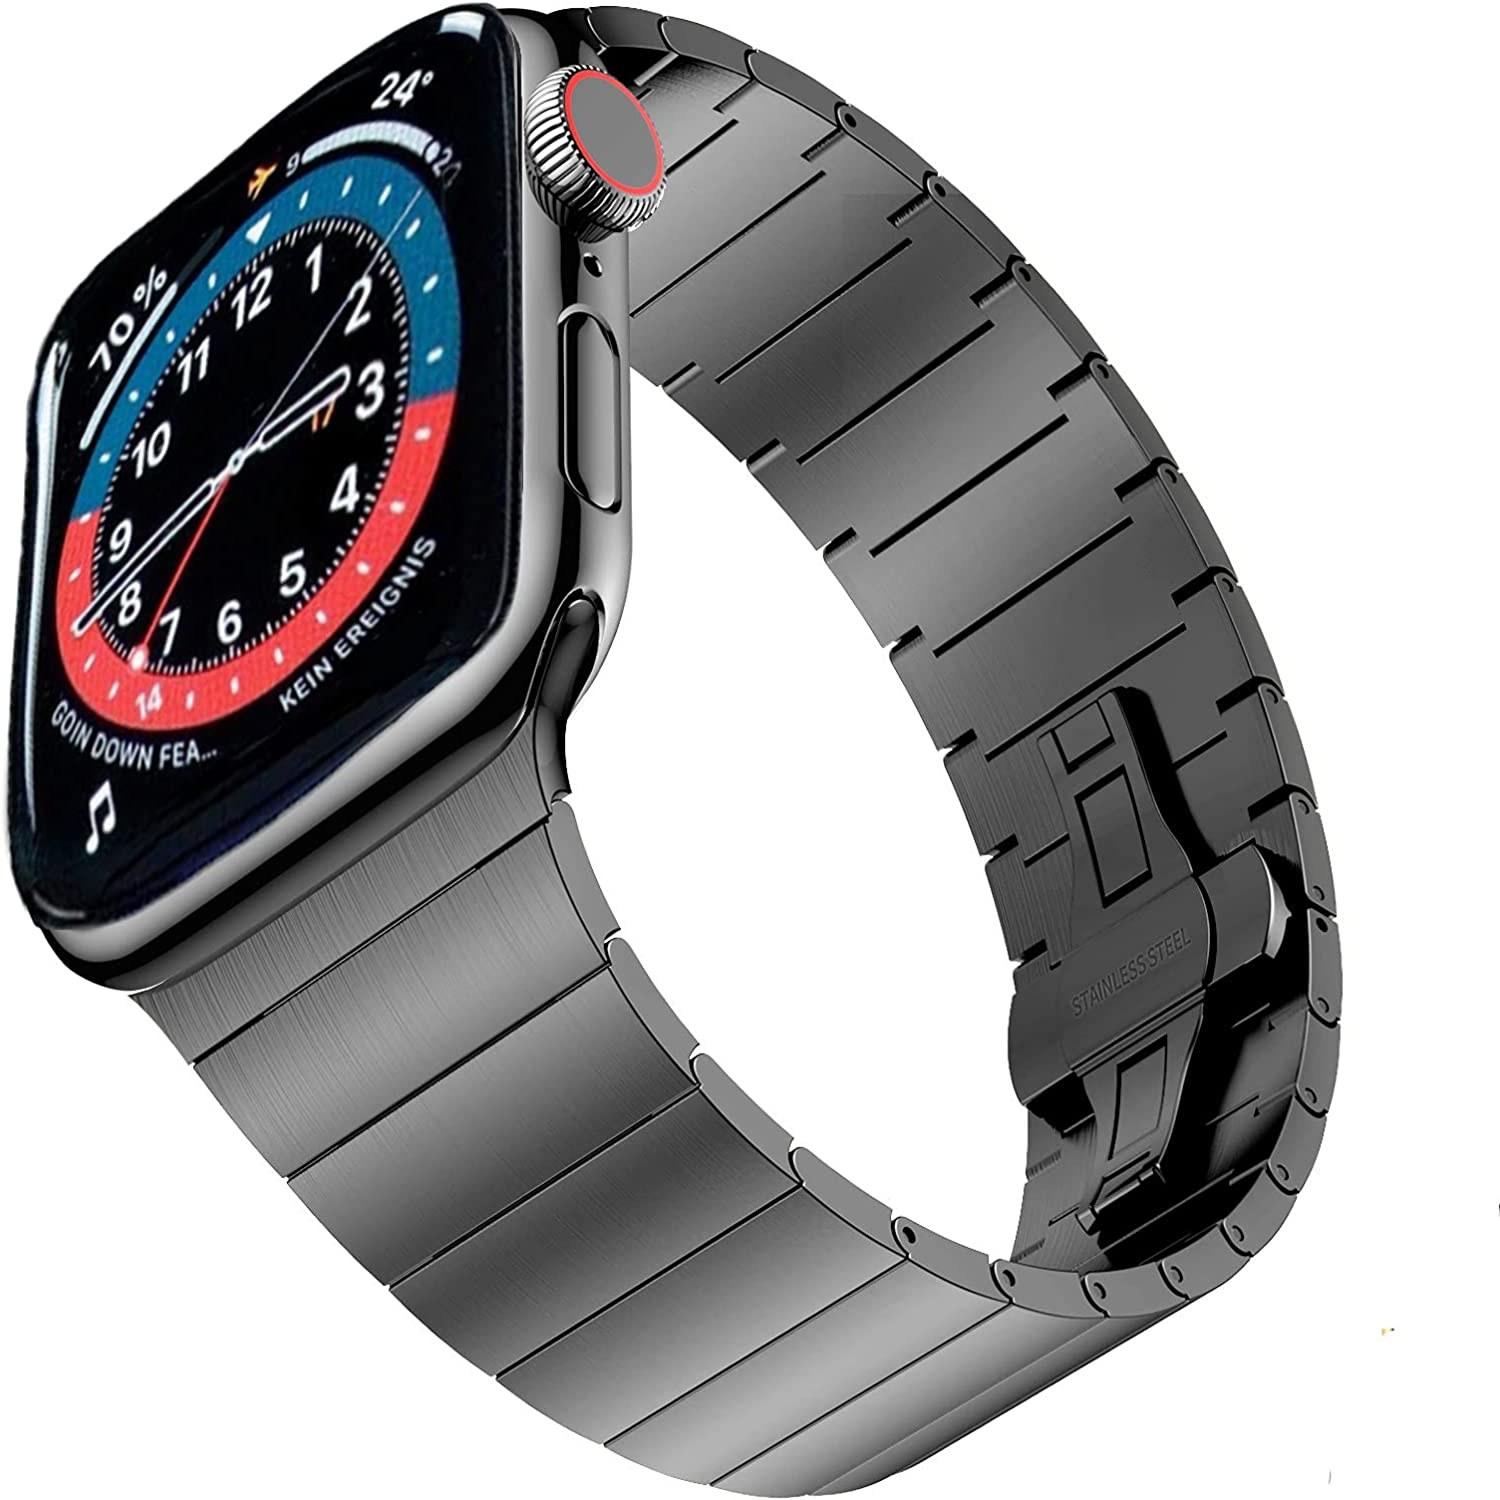 Hallsen Upgraded Metal Bands Compatible with Apple Watch Band 44mm/40mm Series 6/5/4/SE Series 3/2/1 42mm/38mm, Solid Stainless Steel Sport Replacement Strap for iWatch Band Men Women